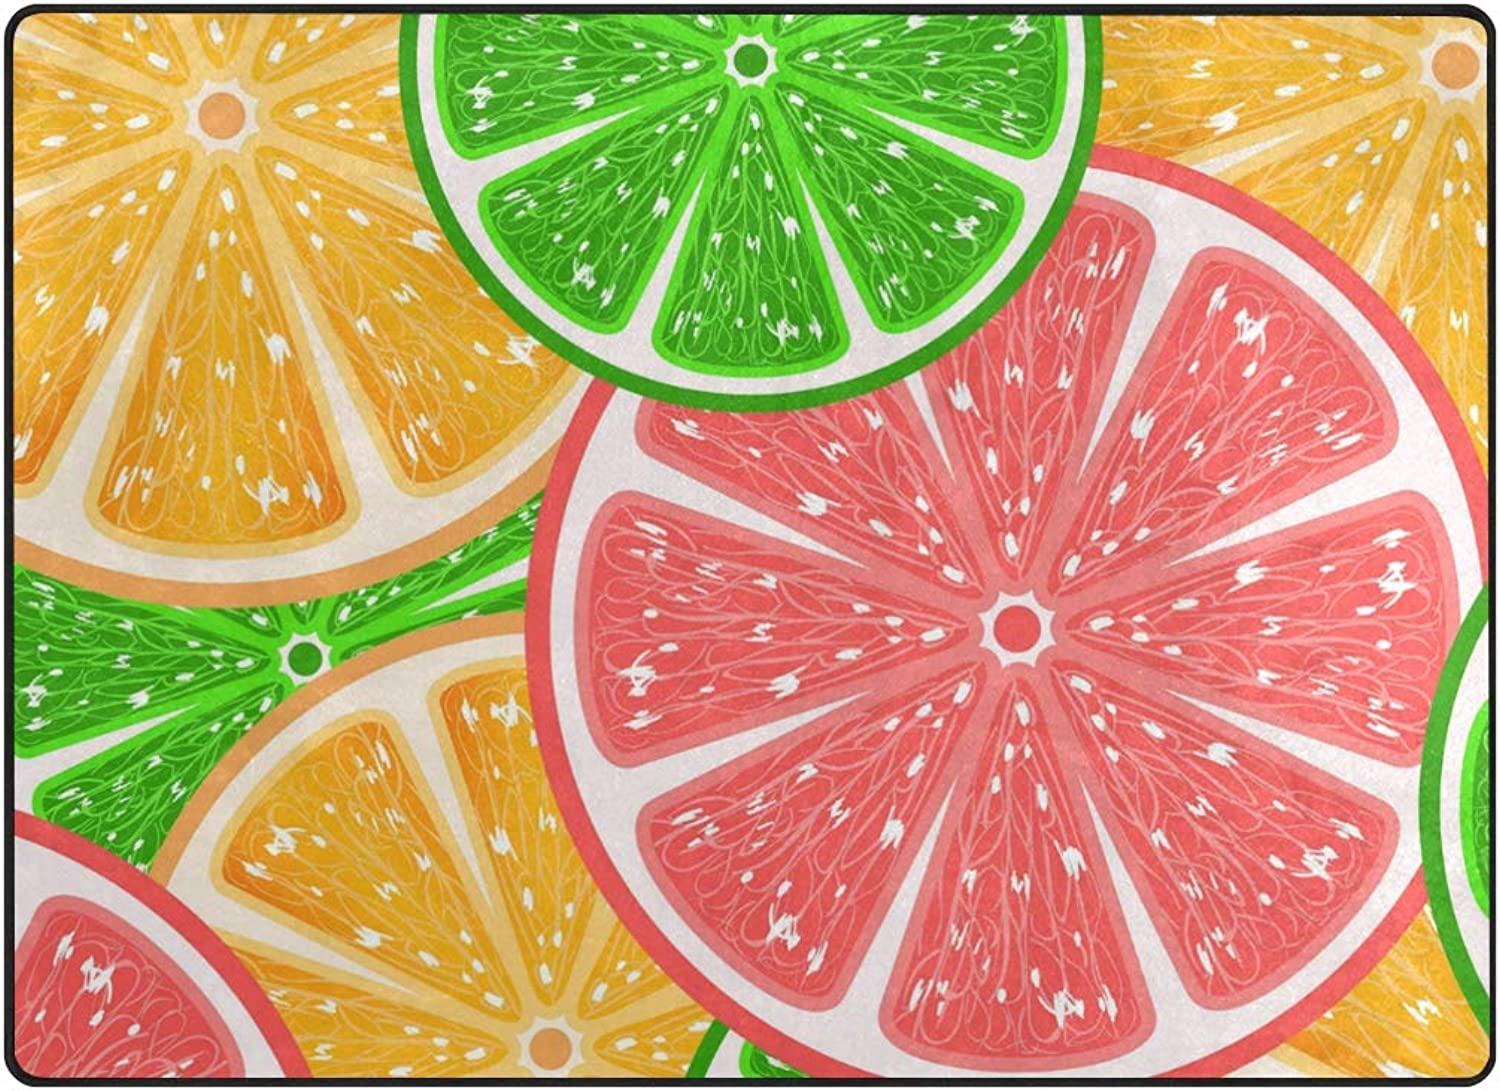 FAJRO Citrus Fruit Pattern Rugs for entryway Doormat Area Rug Multipattern Door Mat shoes Scraper Home Dec Anti-Slip Indoor Outdoor